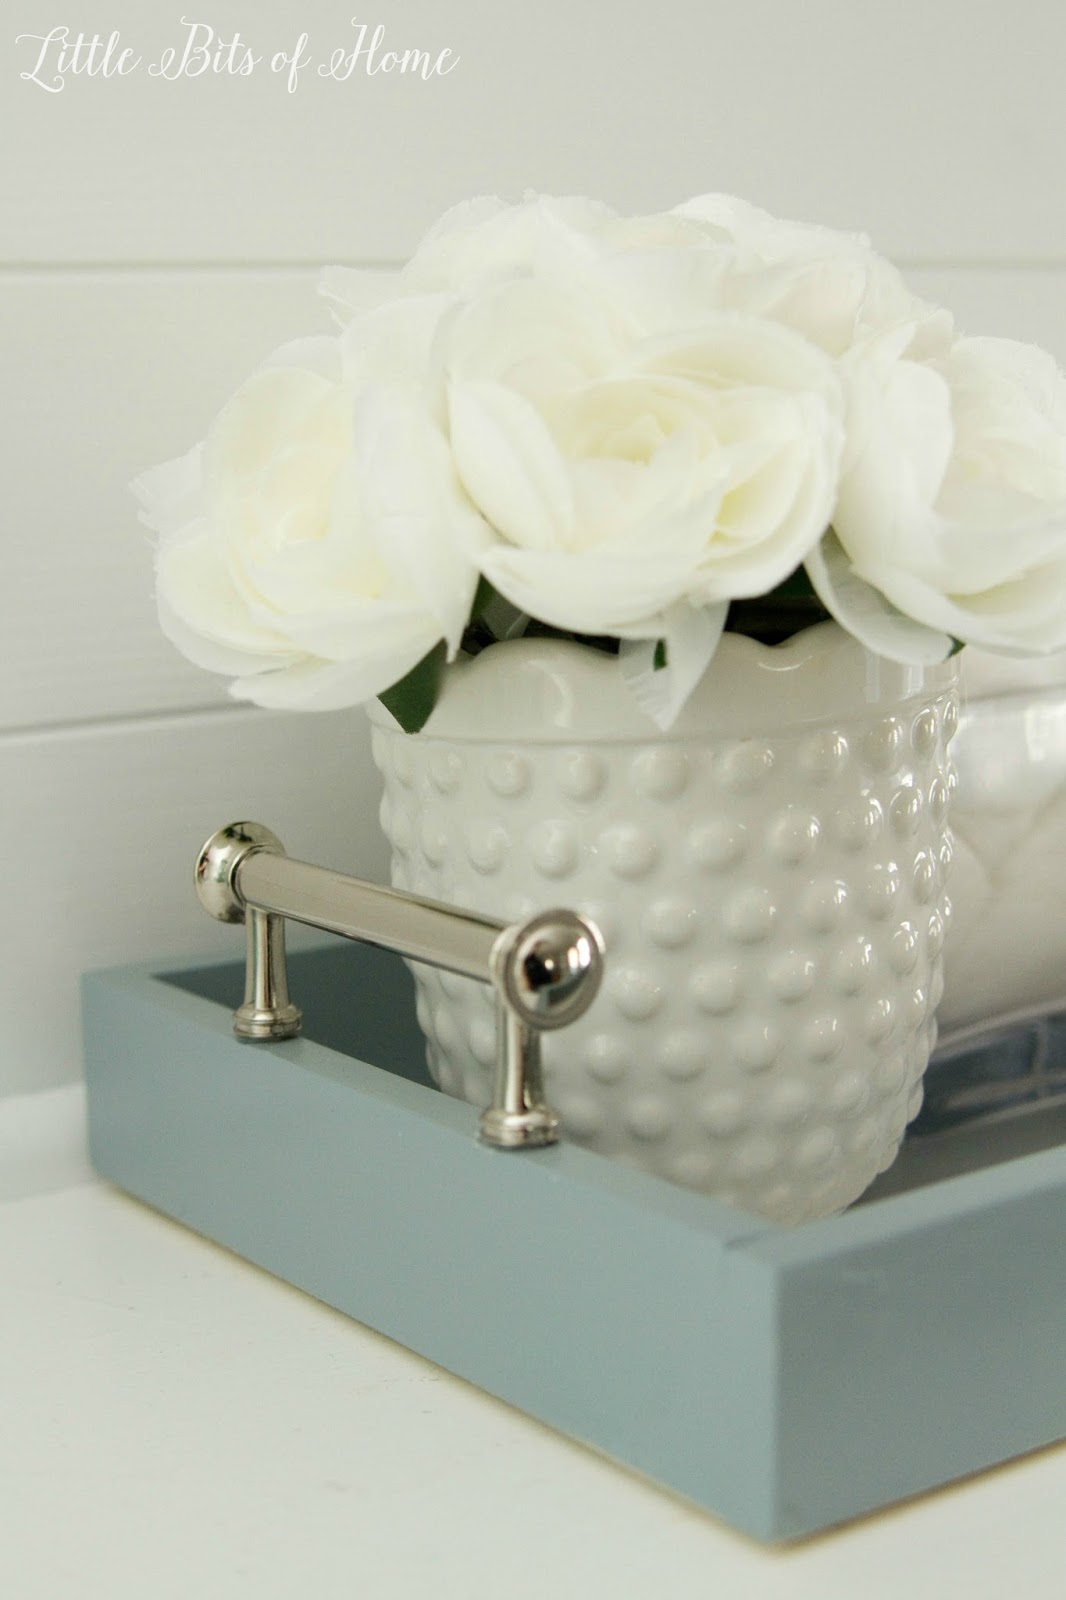 Little Bits of Home Bathroom Countertop Tray